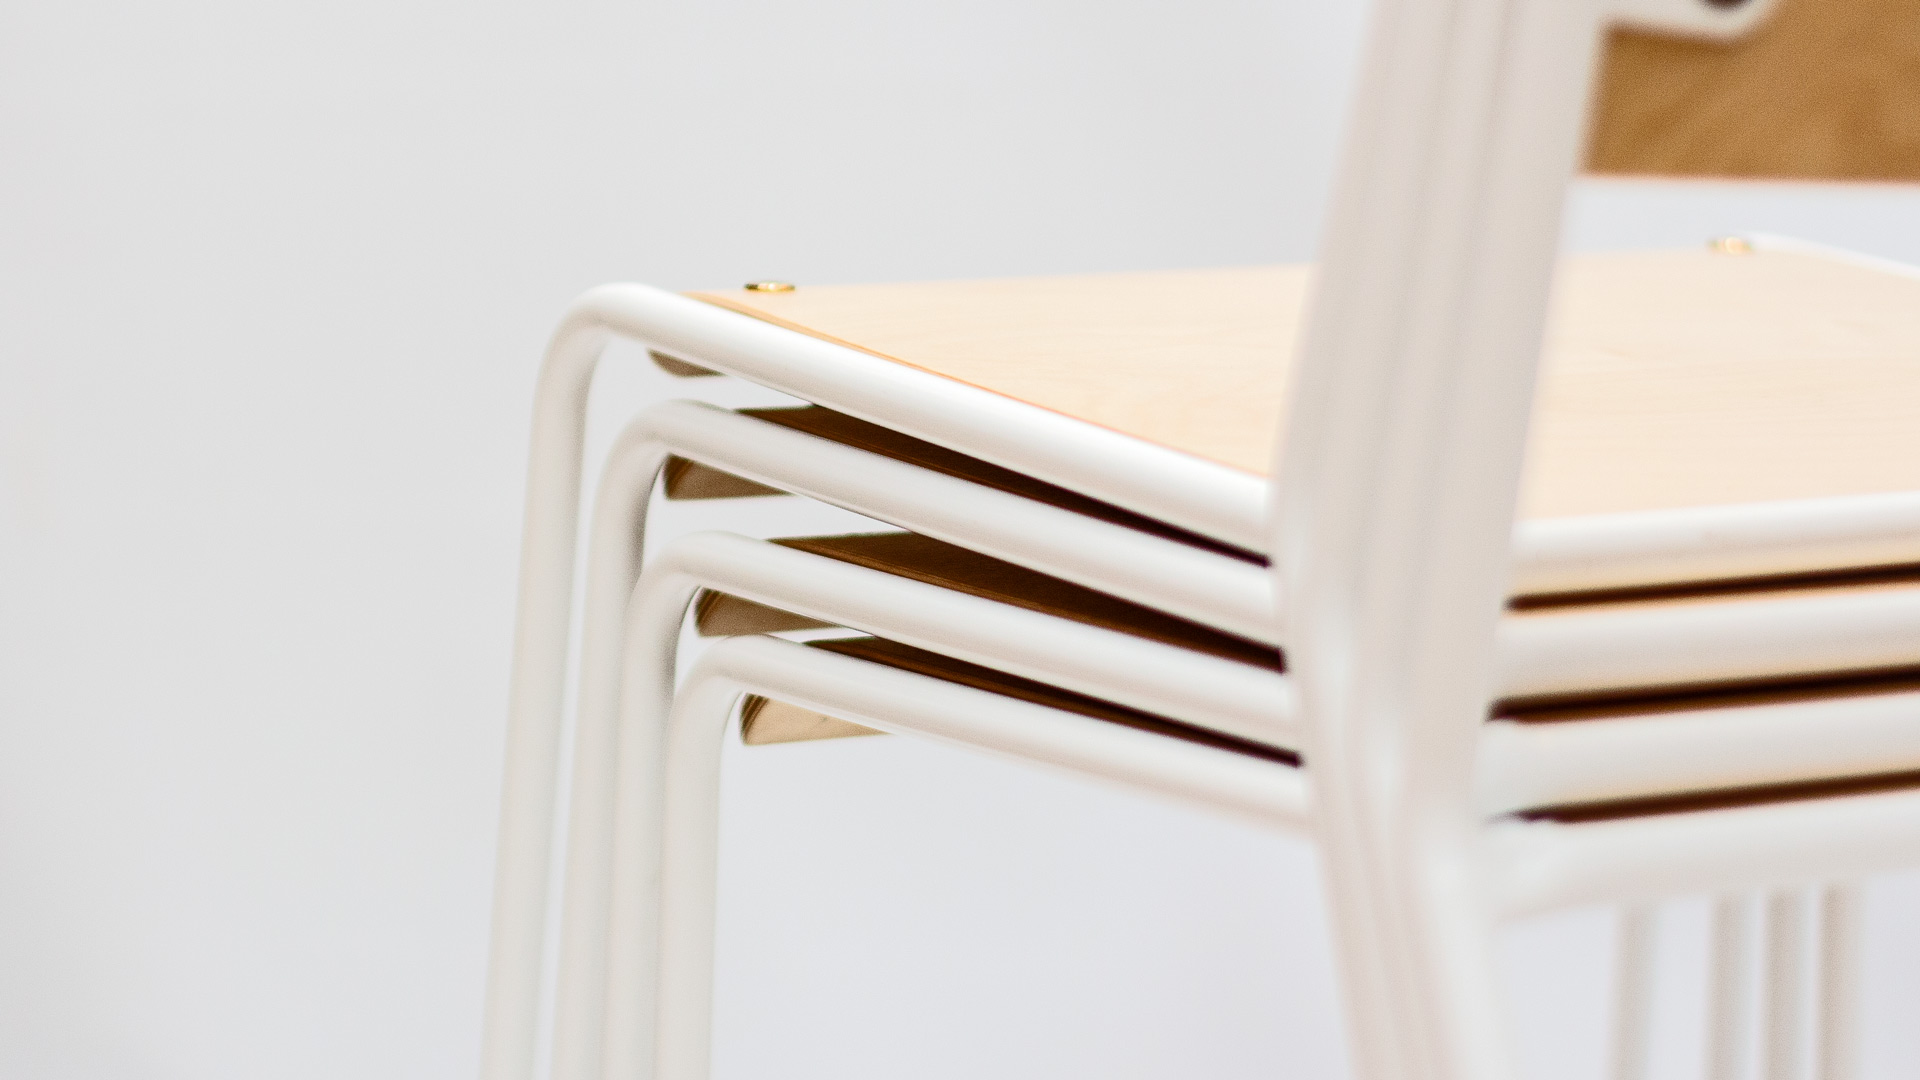 commercial seating chairs recaro office chair base stackable cafe furniture restaurant we also offer a special edition upholstered version making this very adaptable piece of